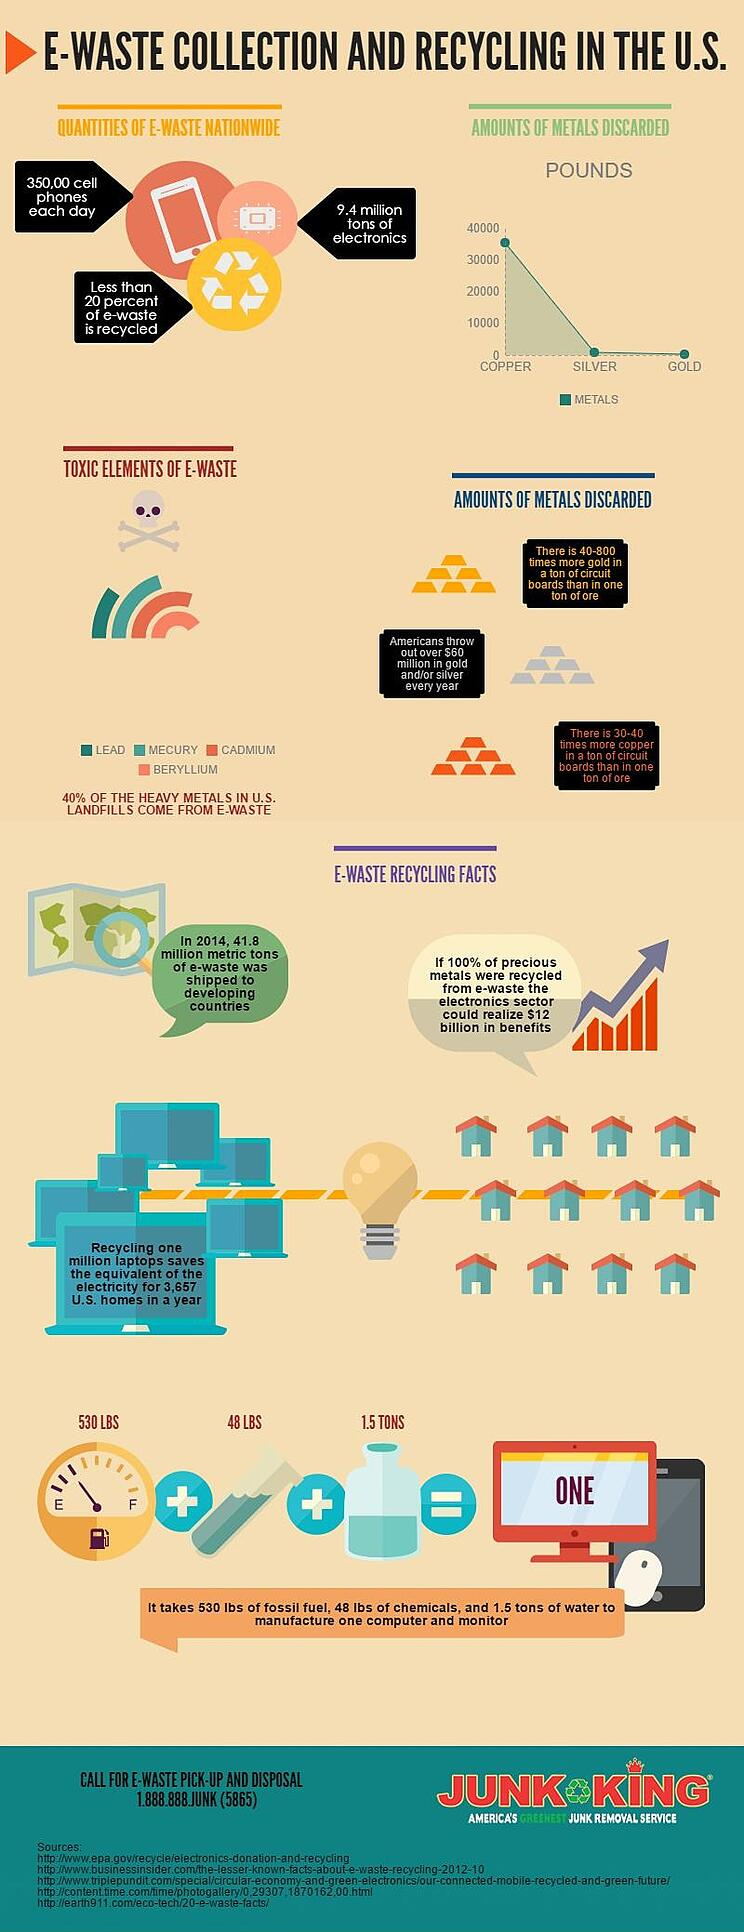 got-old-phones-junk-removal-for-e-waste-infographic